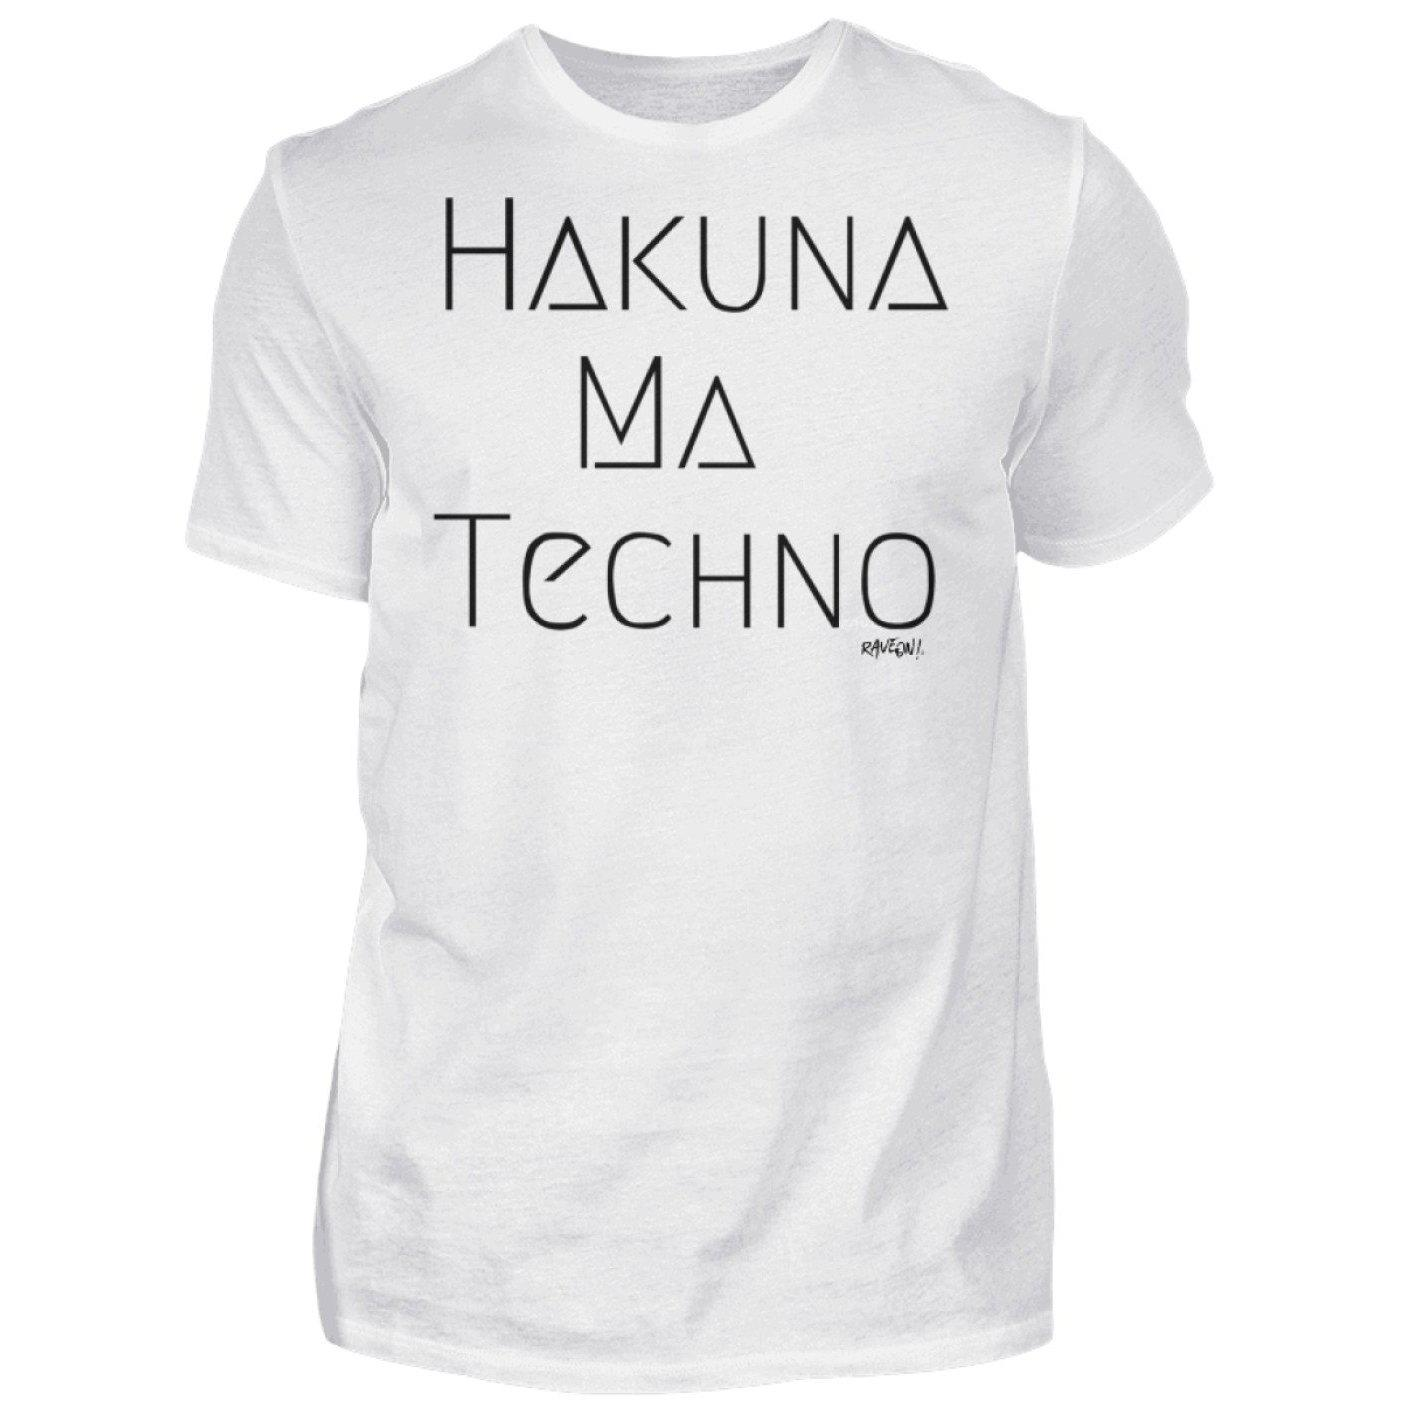 HAKUNA MA TECHNO white - Rave On!® - Herren Shirt Herren Basic T-Shirt White / S - Rave On!® der Club & Techno Szene Shop für Coole Junge Mode Streetwear Style & Fashion Outfits + Sexy Festival 420 Stuff